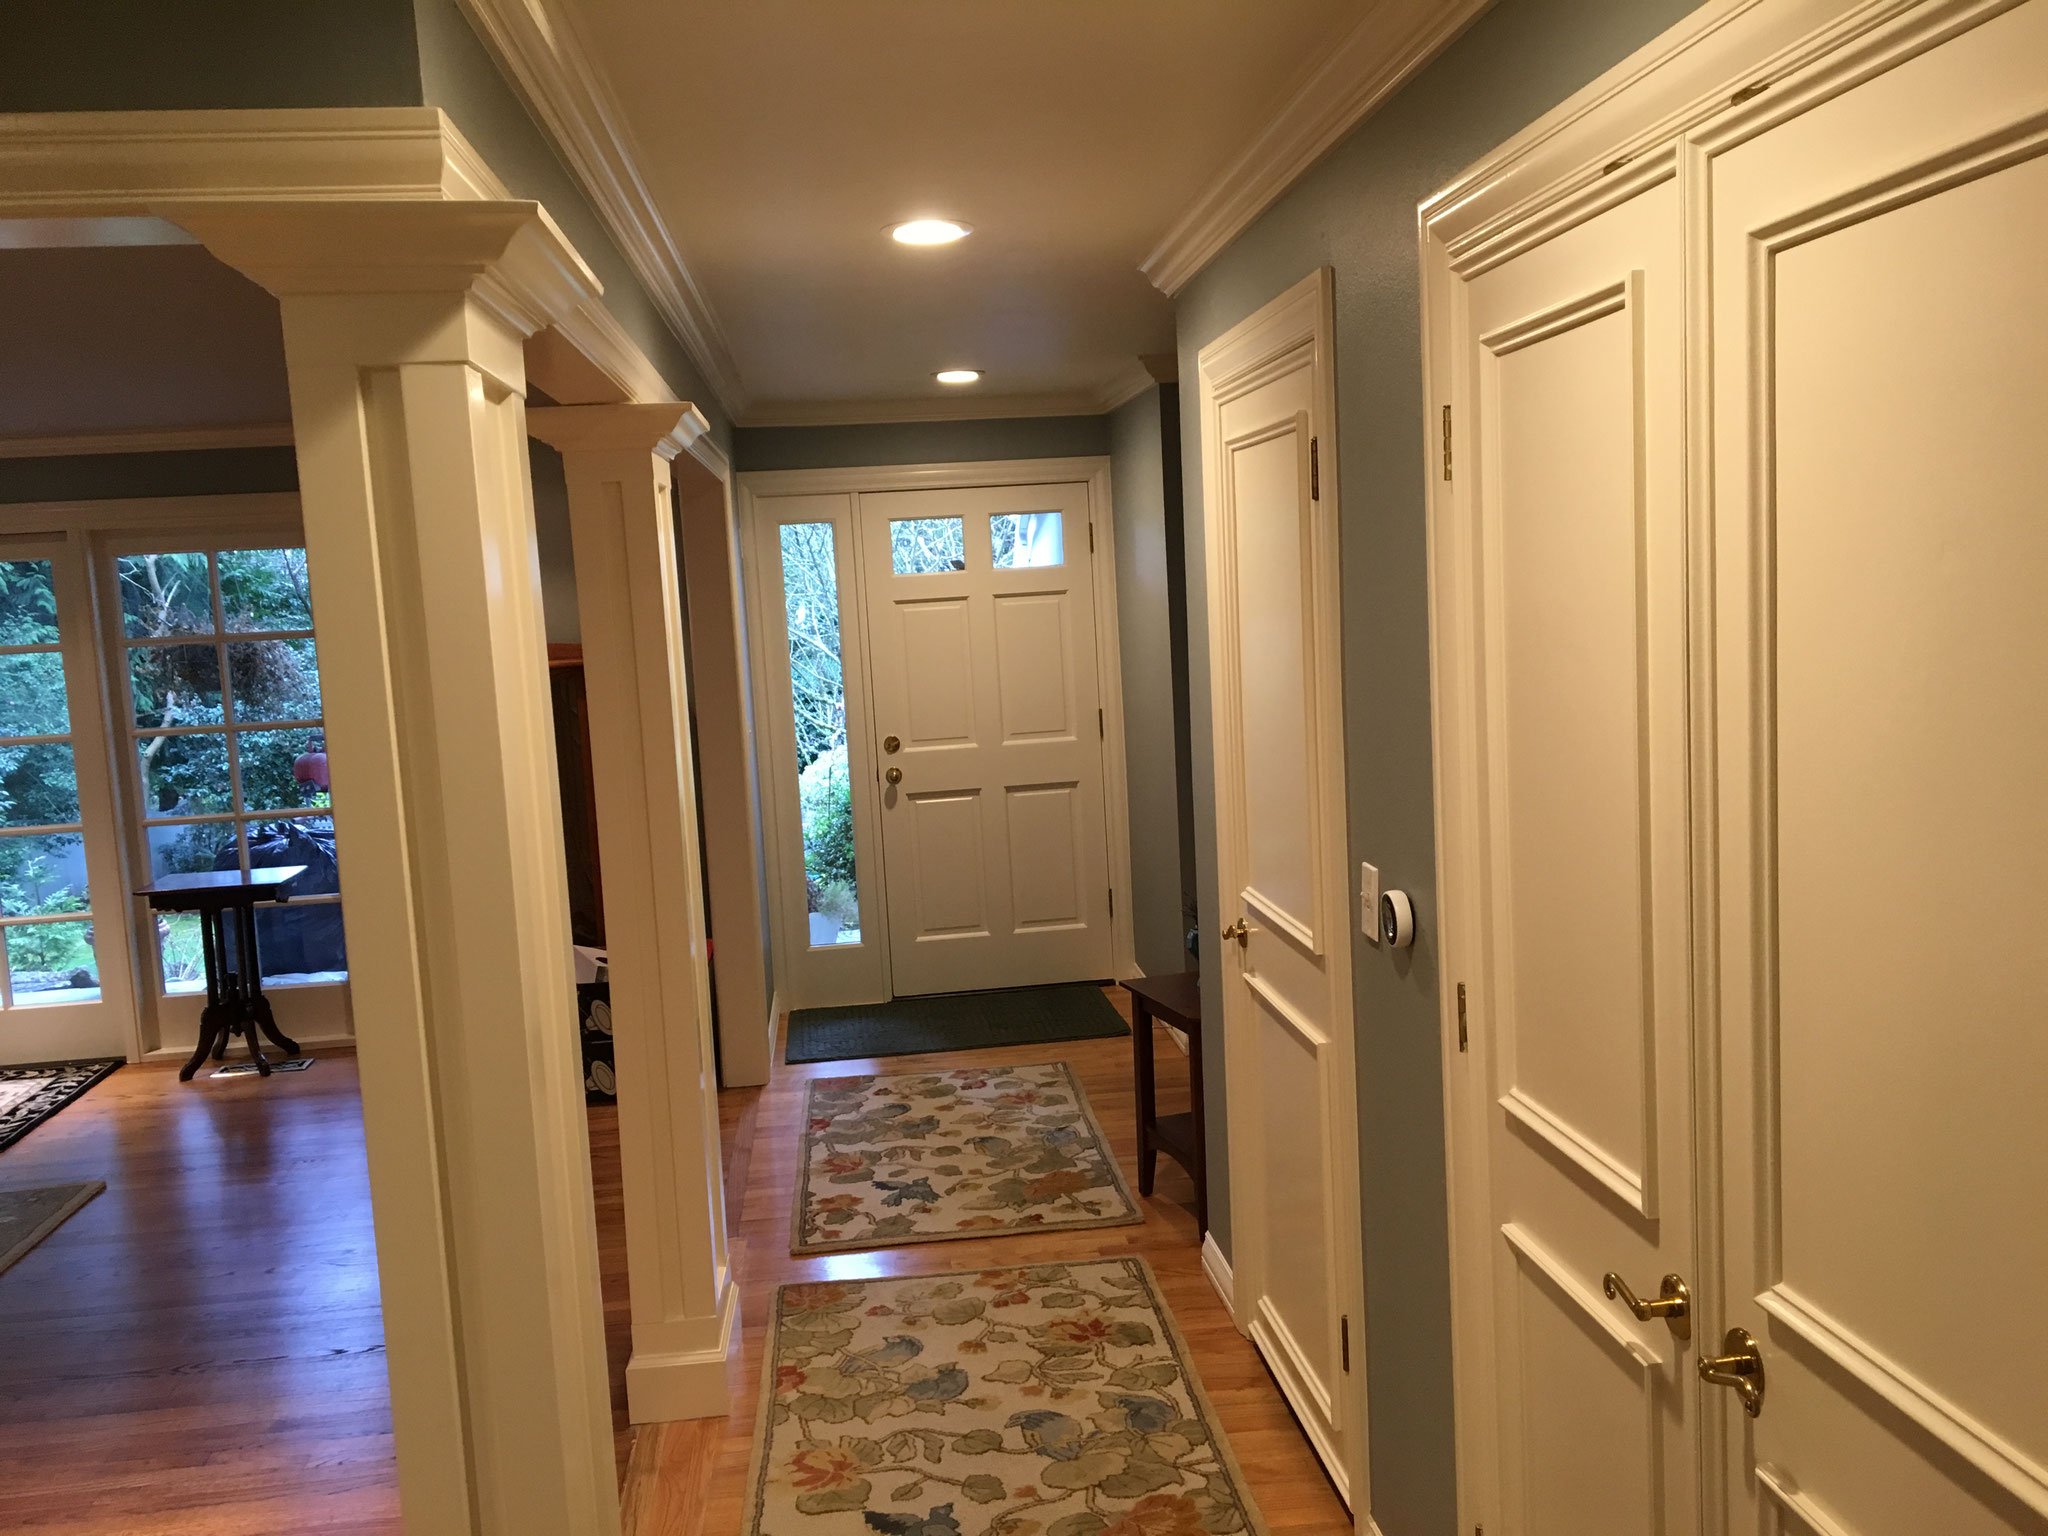 Beautiful white woodwork painted and walls and ceilings too...feels new again...